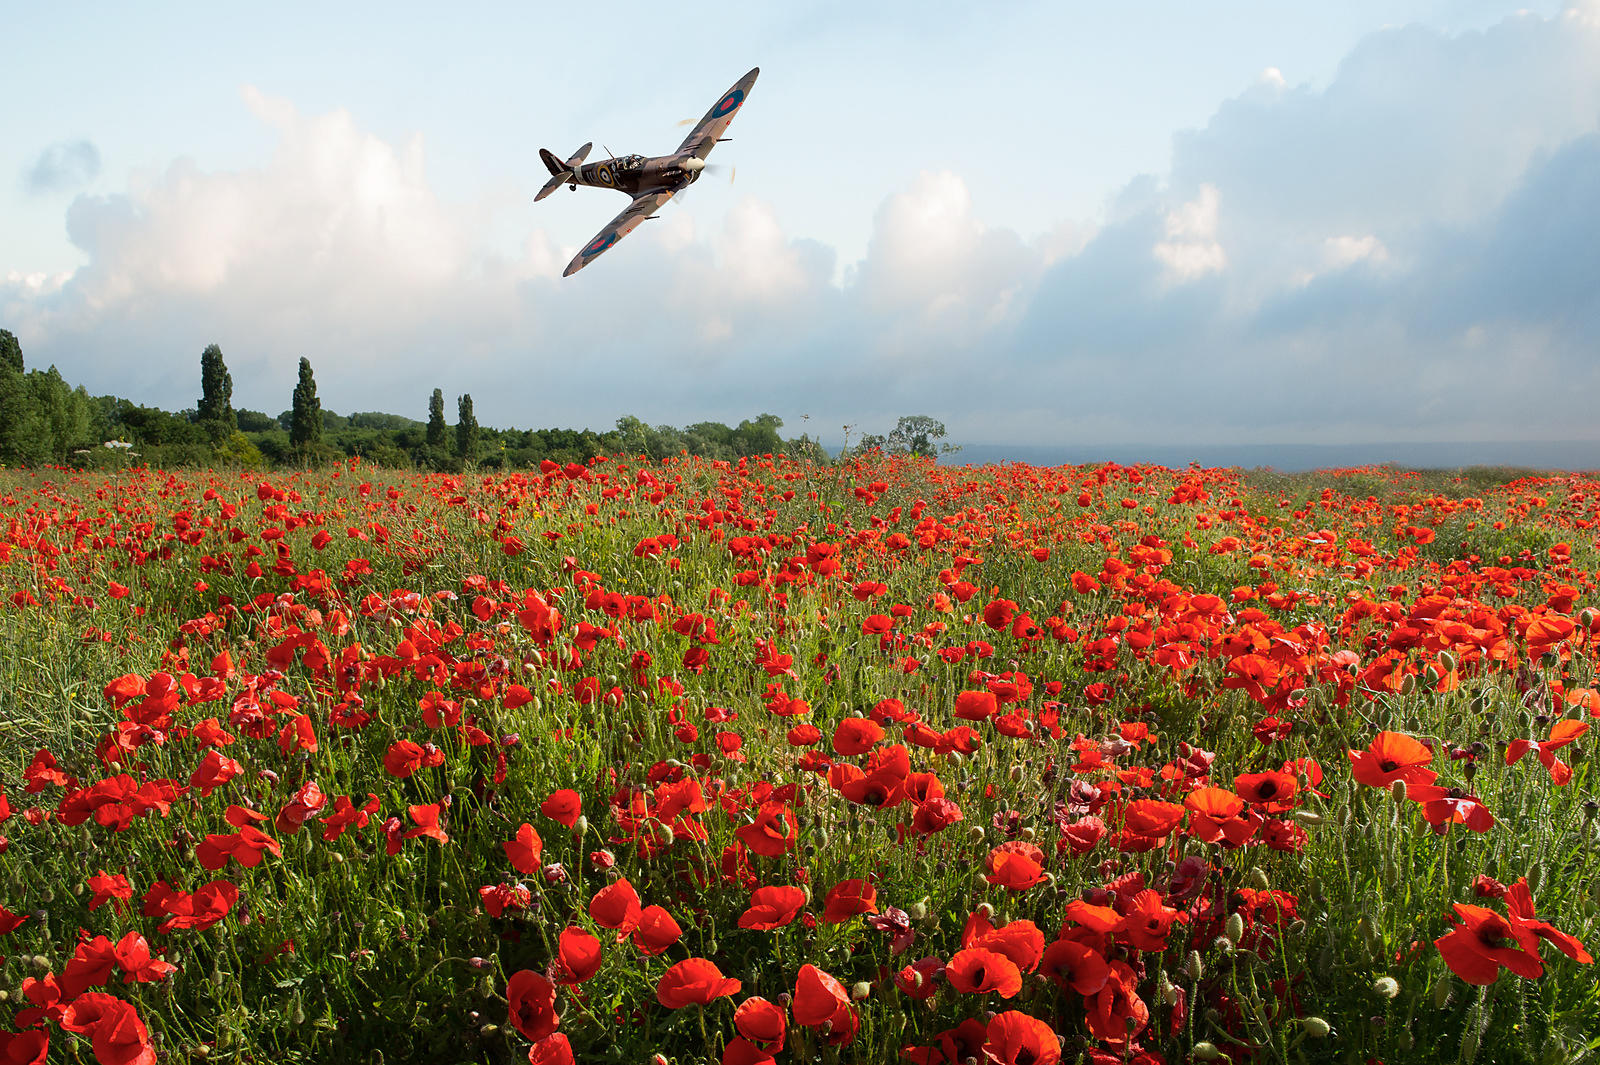 Poppies and RAF Spitfire Vb